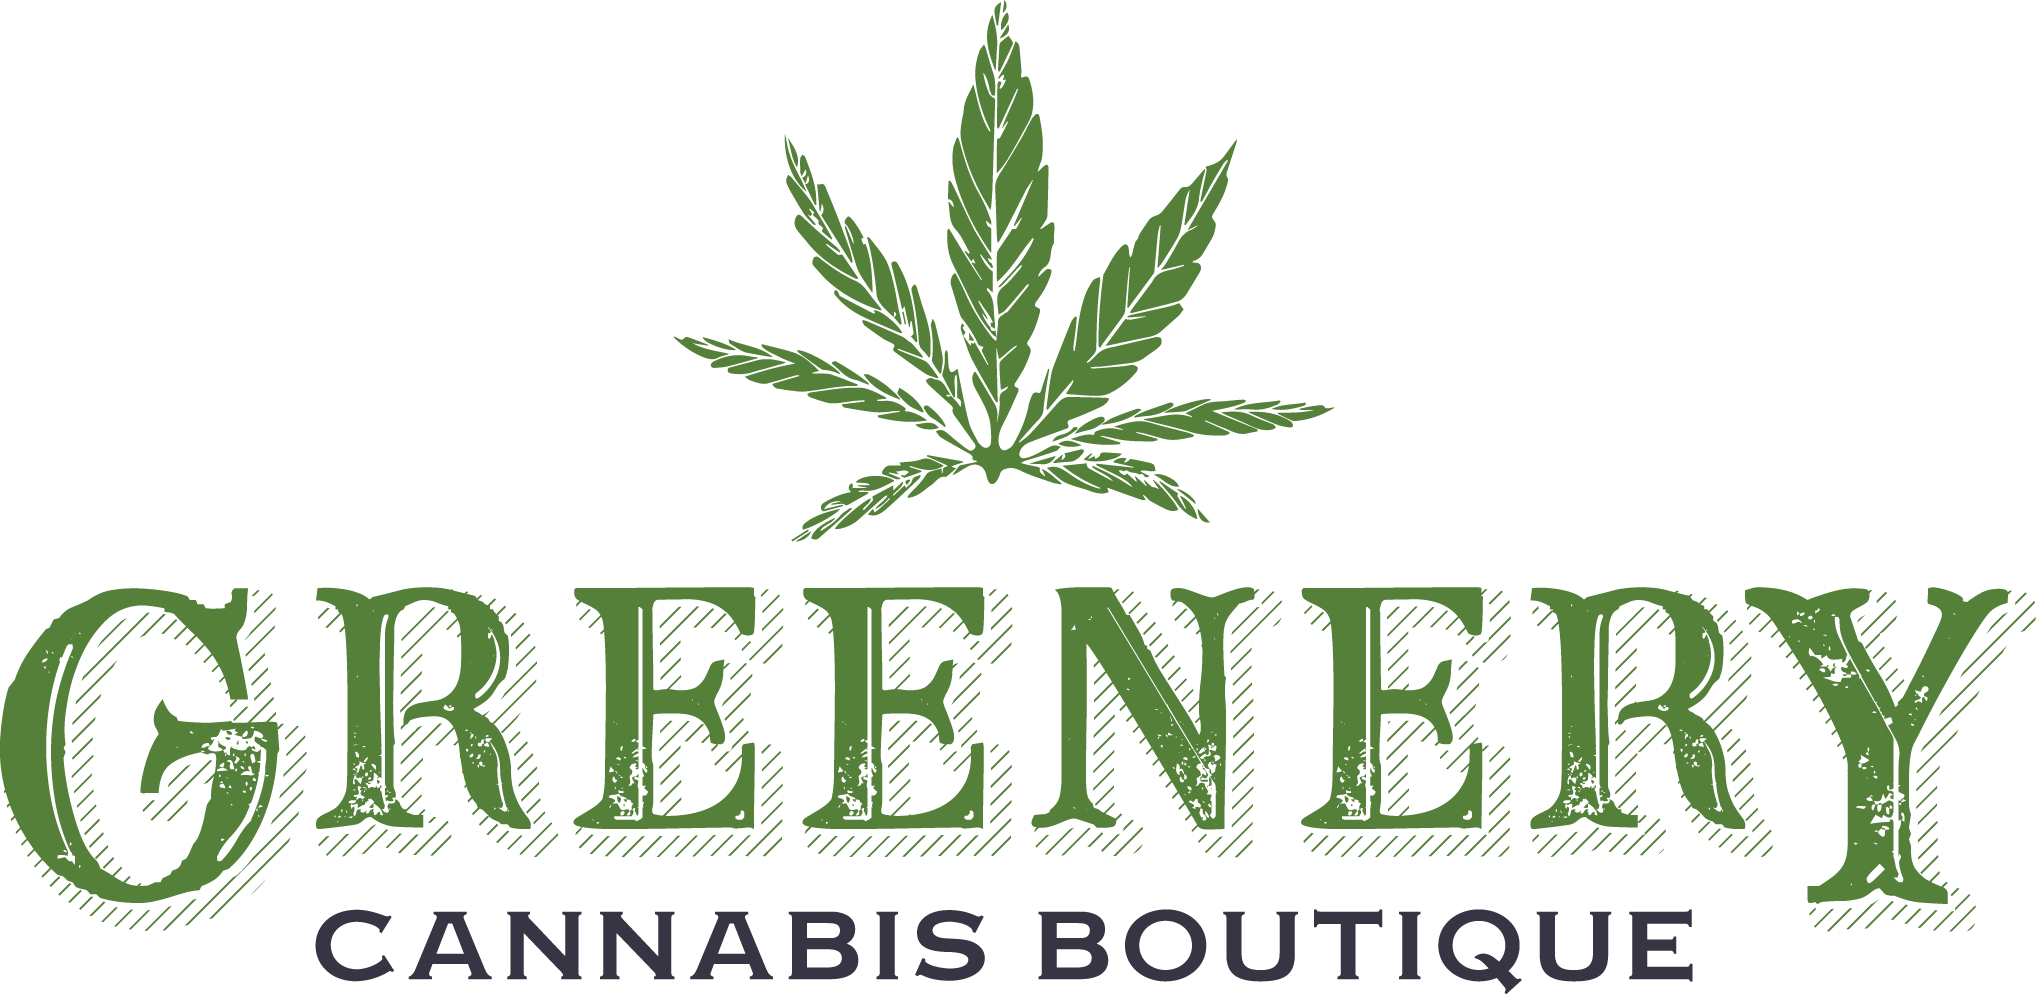 The Greenery Cannabis Boutique   Store